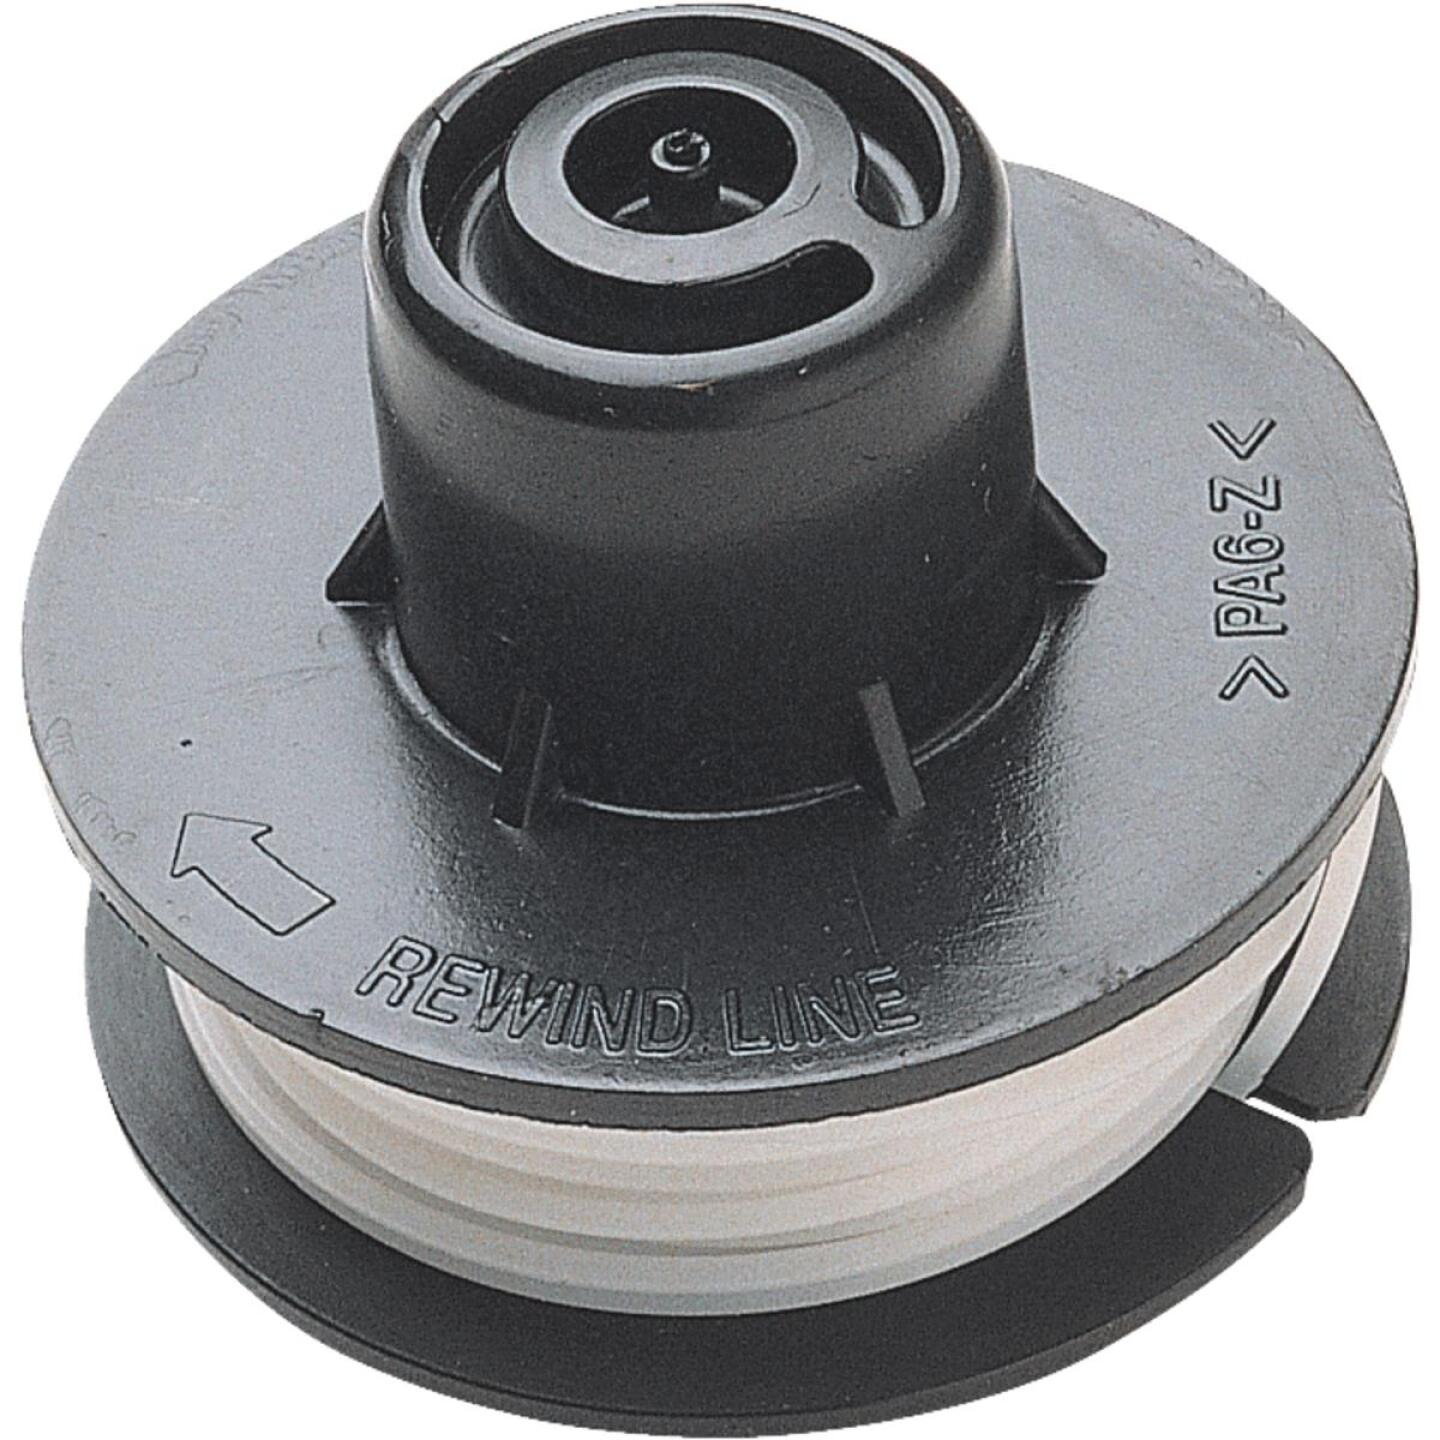 Toro 0.065 In. x 30 Ft. Trimmer Line Spool Image 1